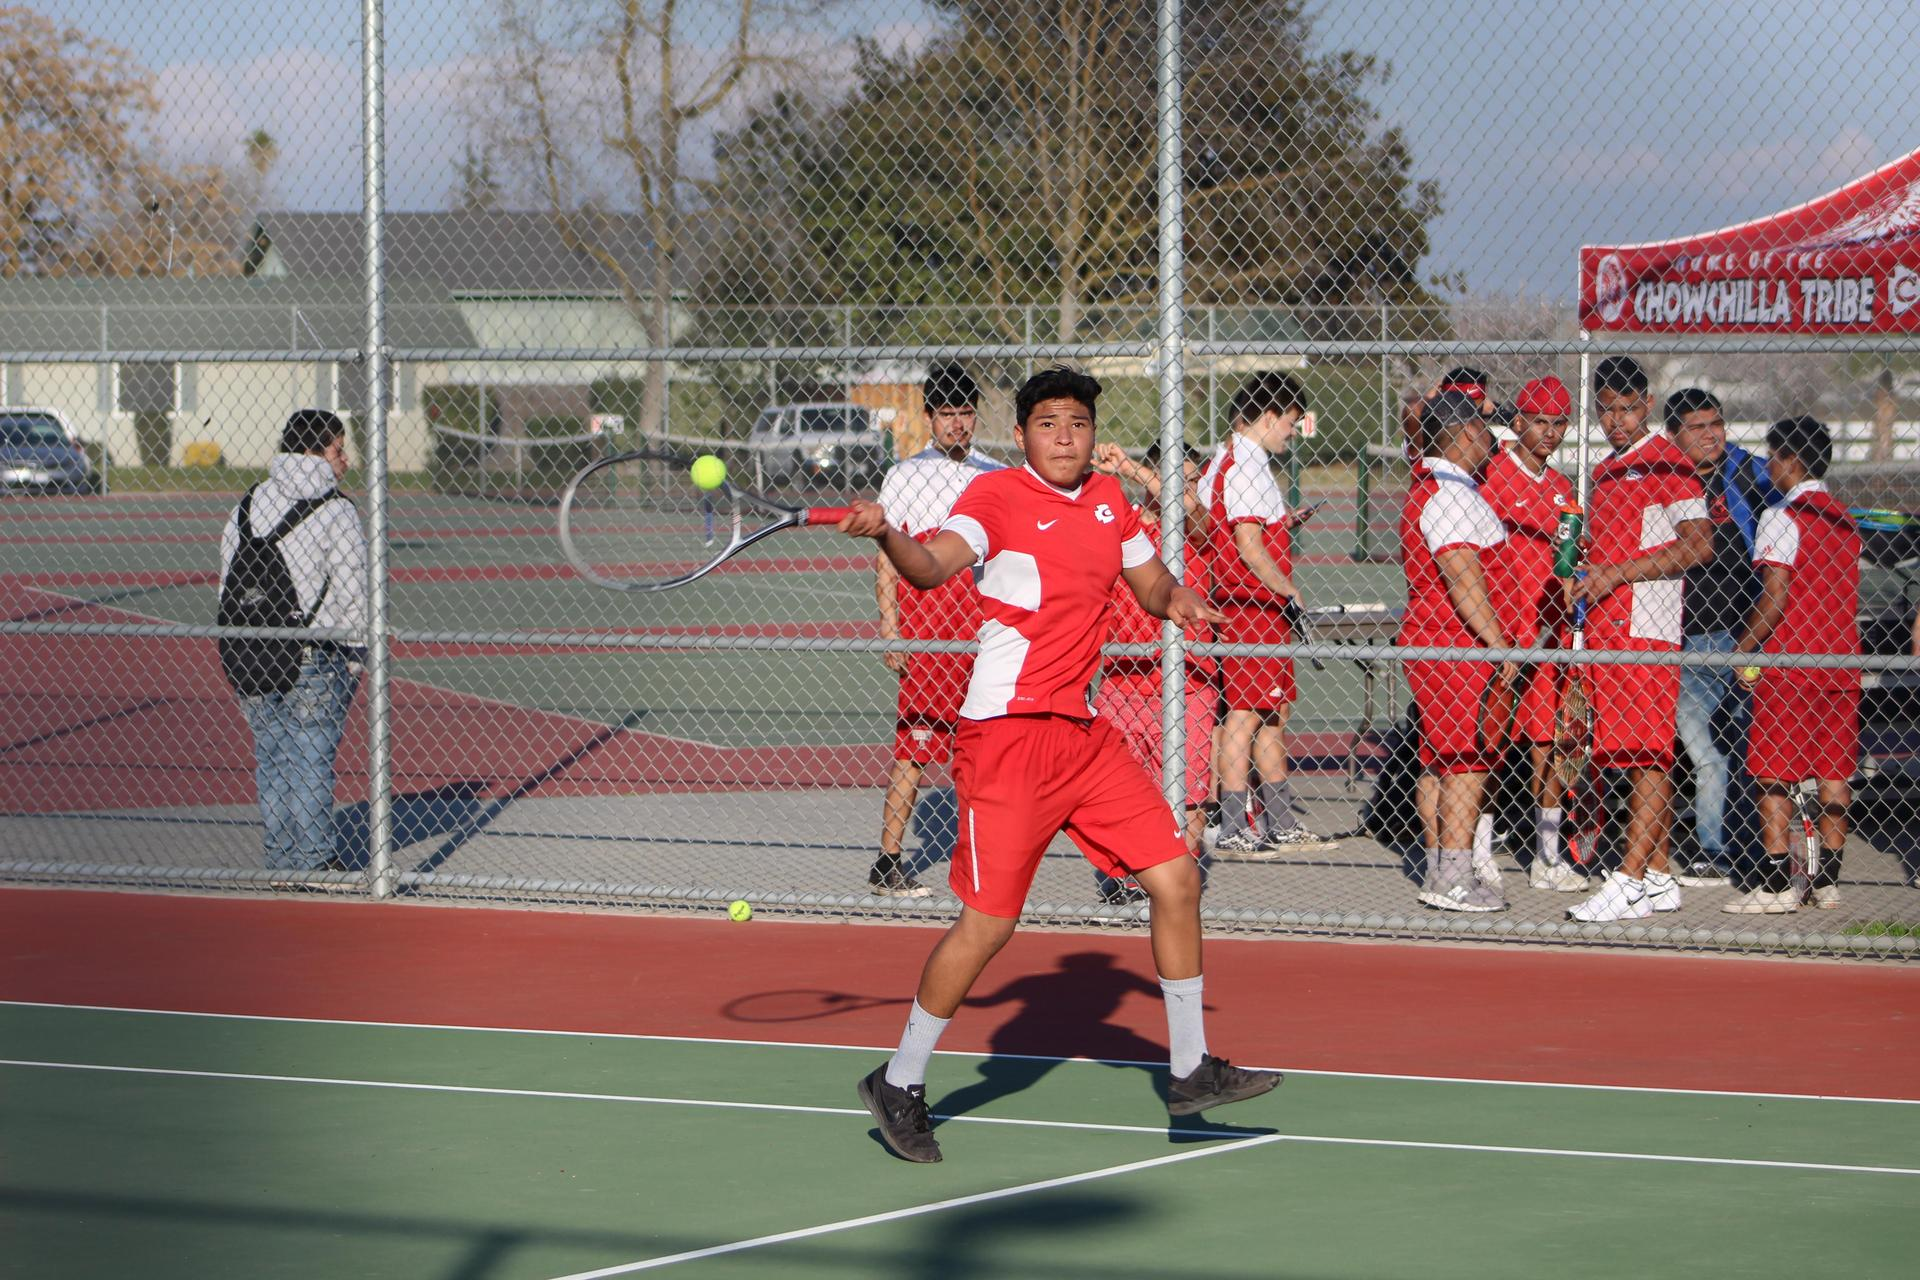 the tennis team watching a player through the fence